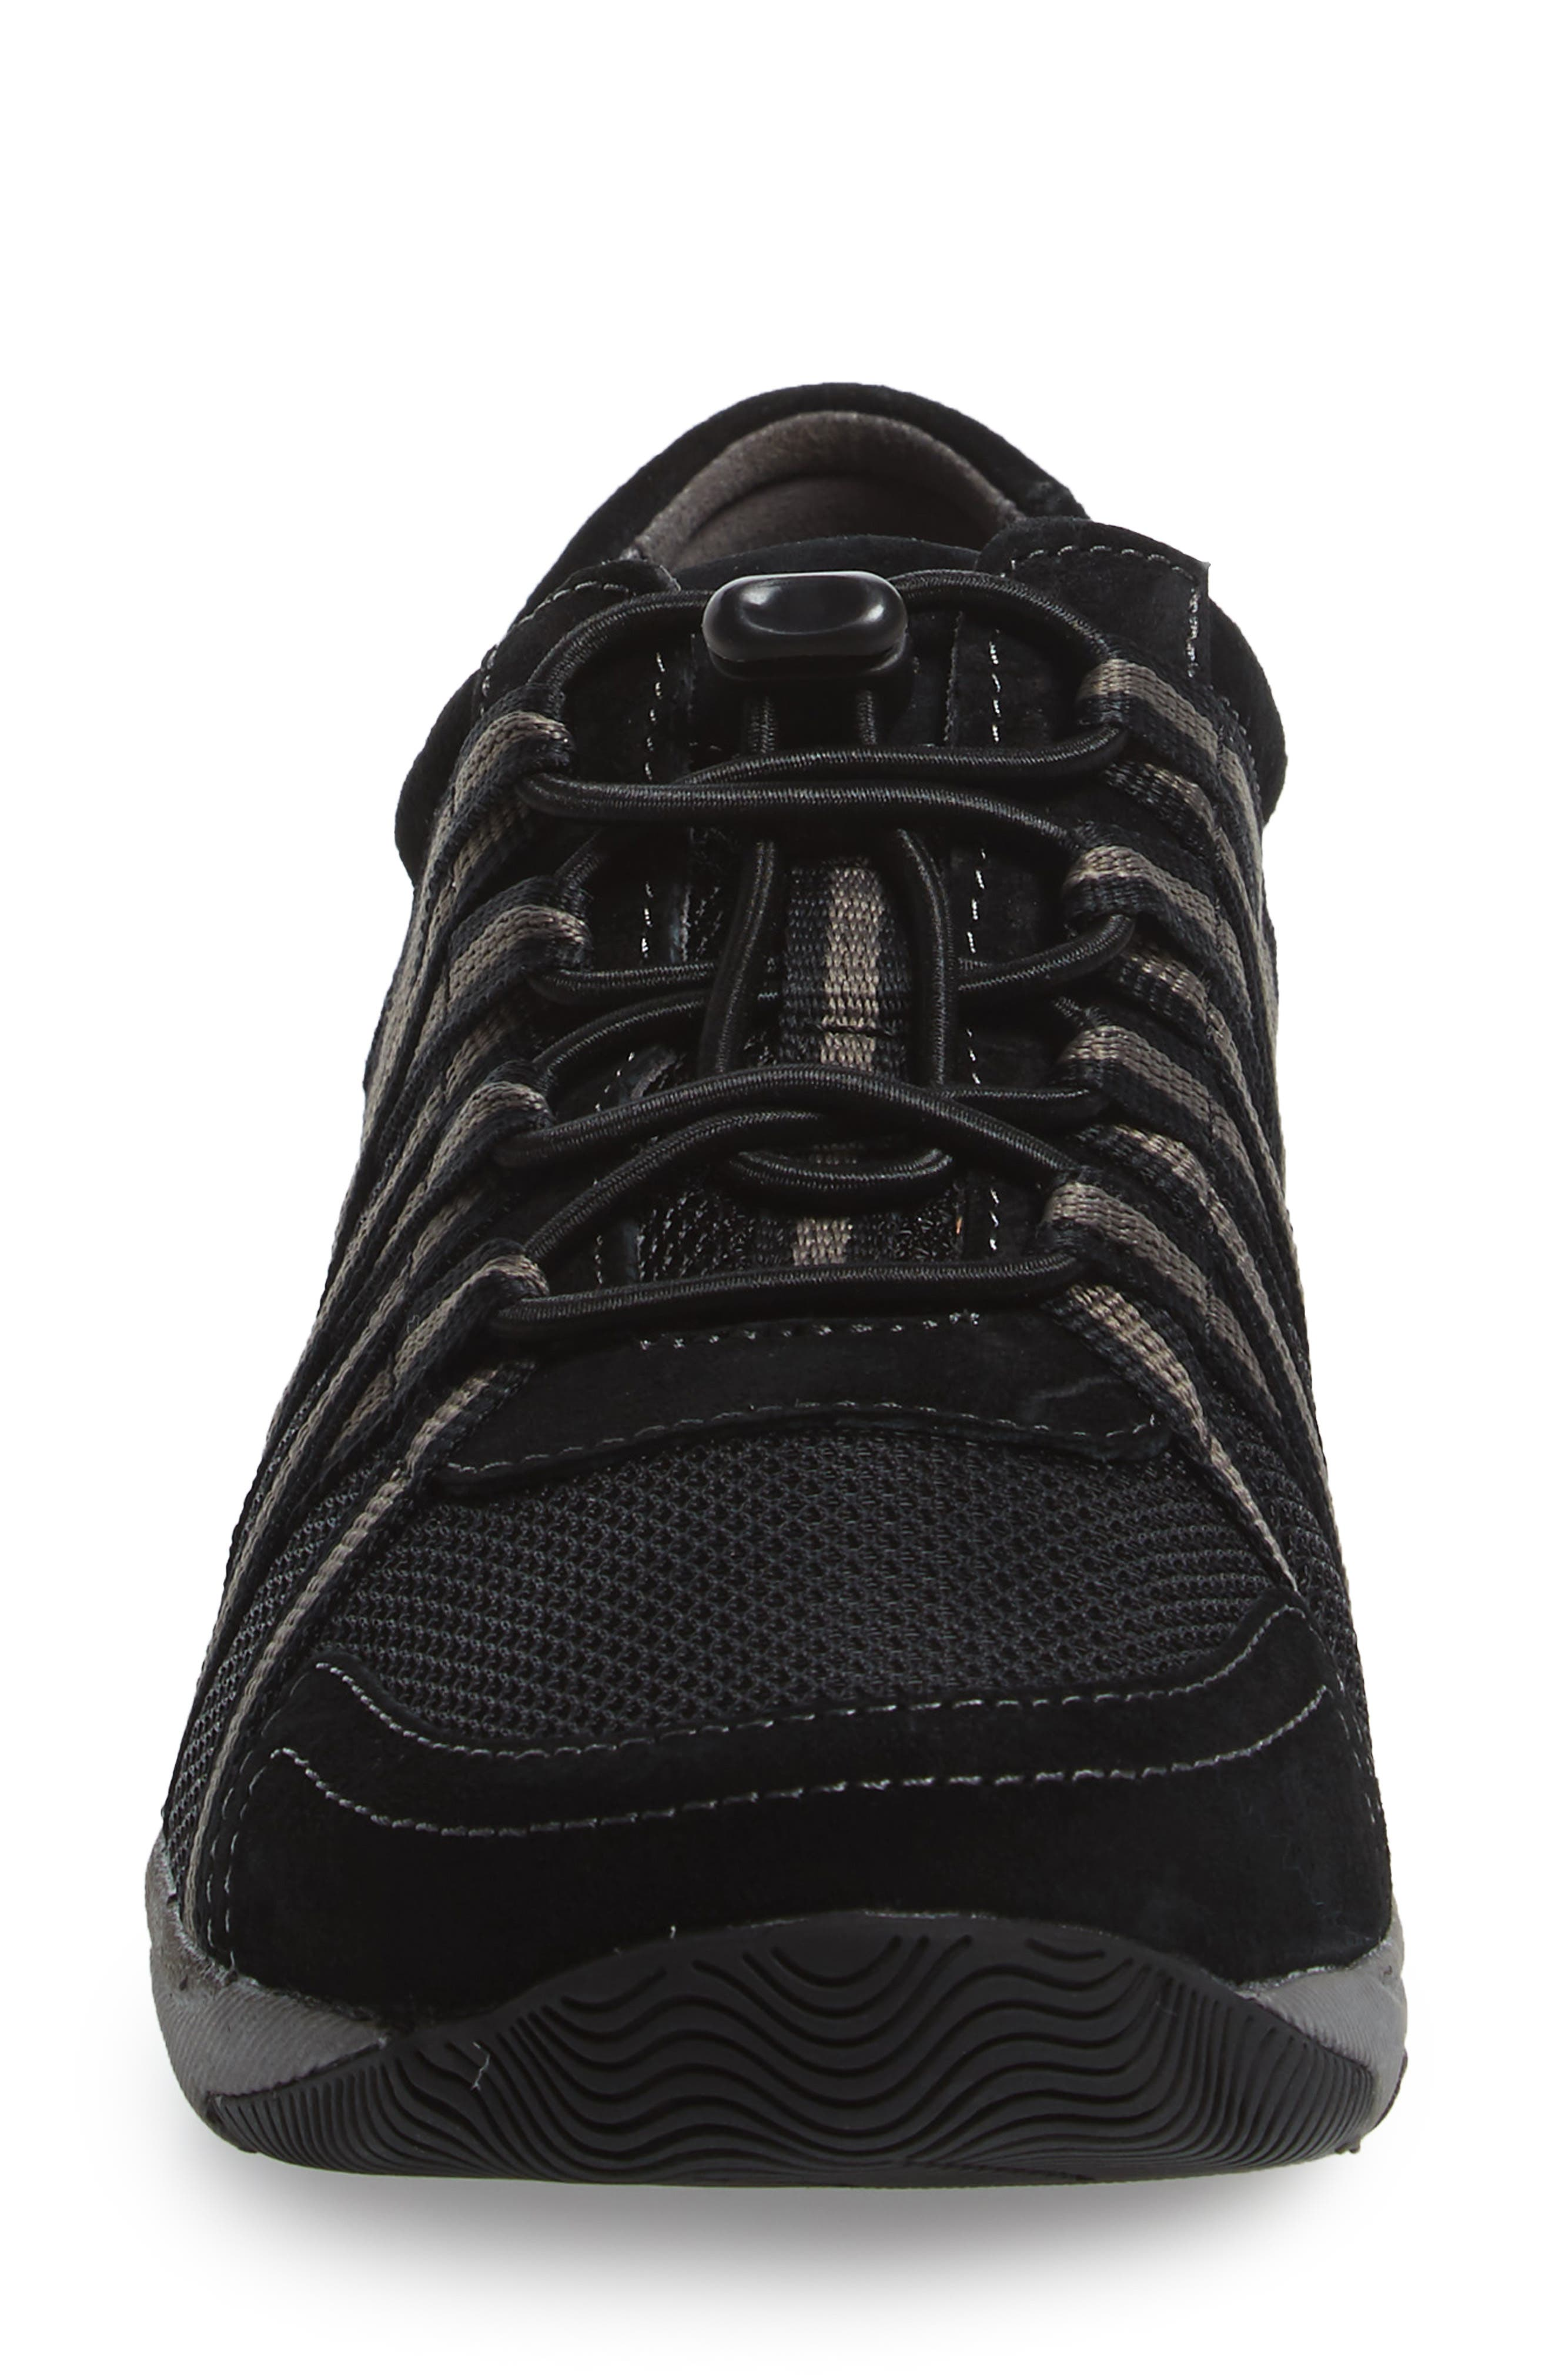 Halifax Collection Honor Sneaker,                             Alternate thumbnail 4, color,                             BLACK/ BLACK SUEDE